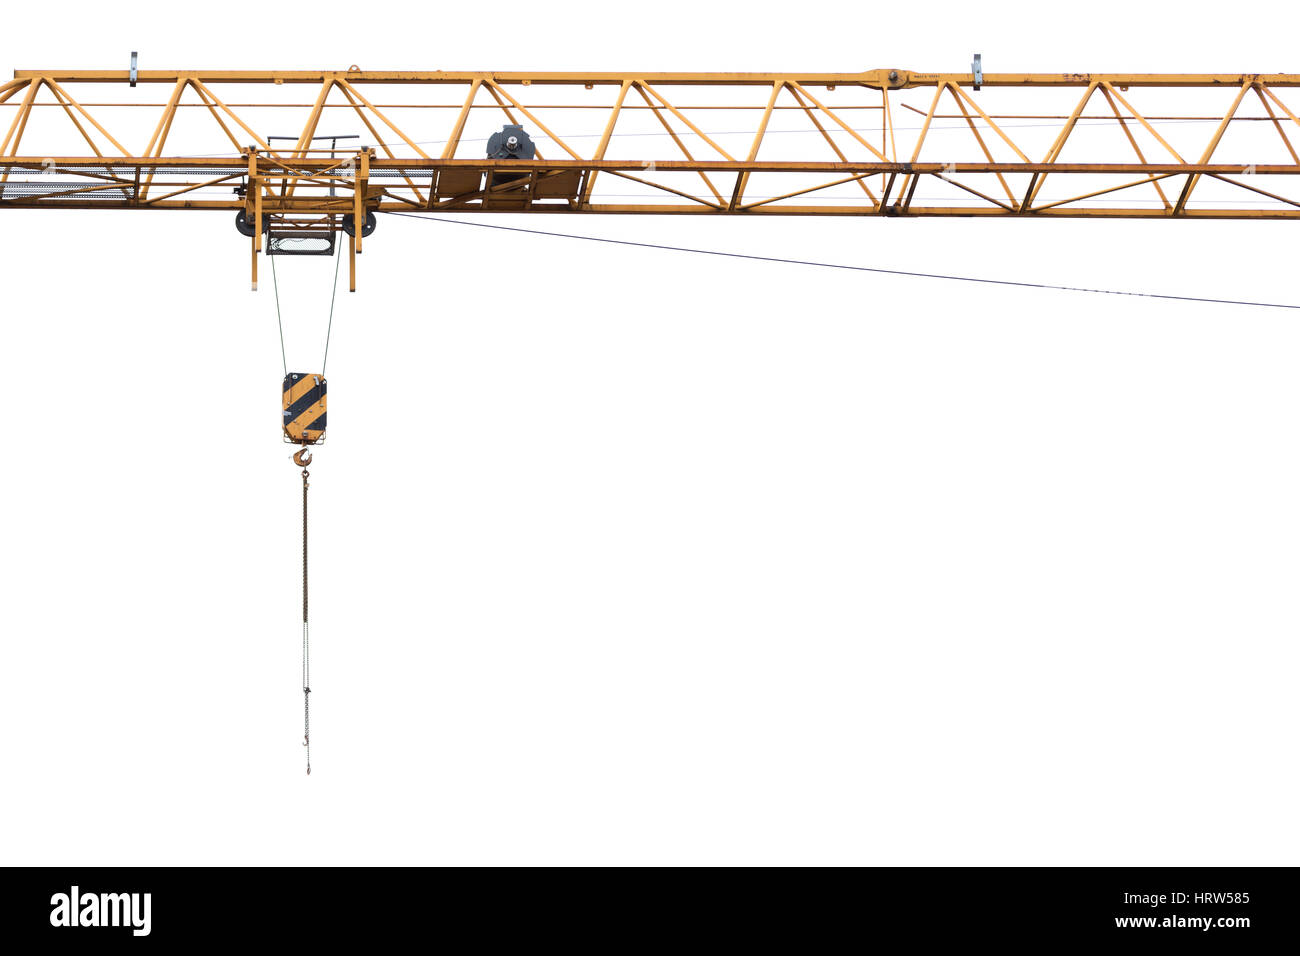 The arm of a yellow crane on a construction site, isolated with a white background - Stock Image